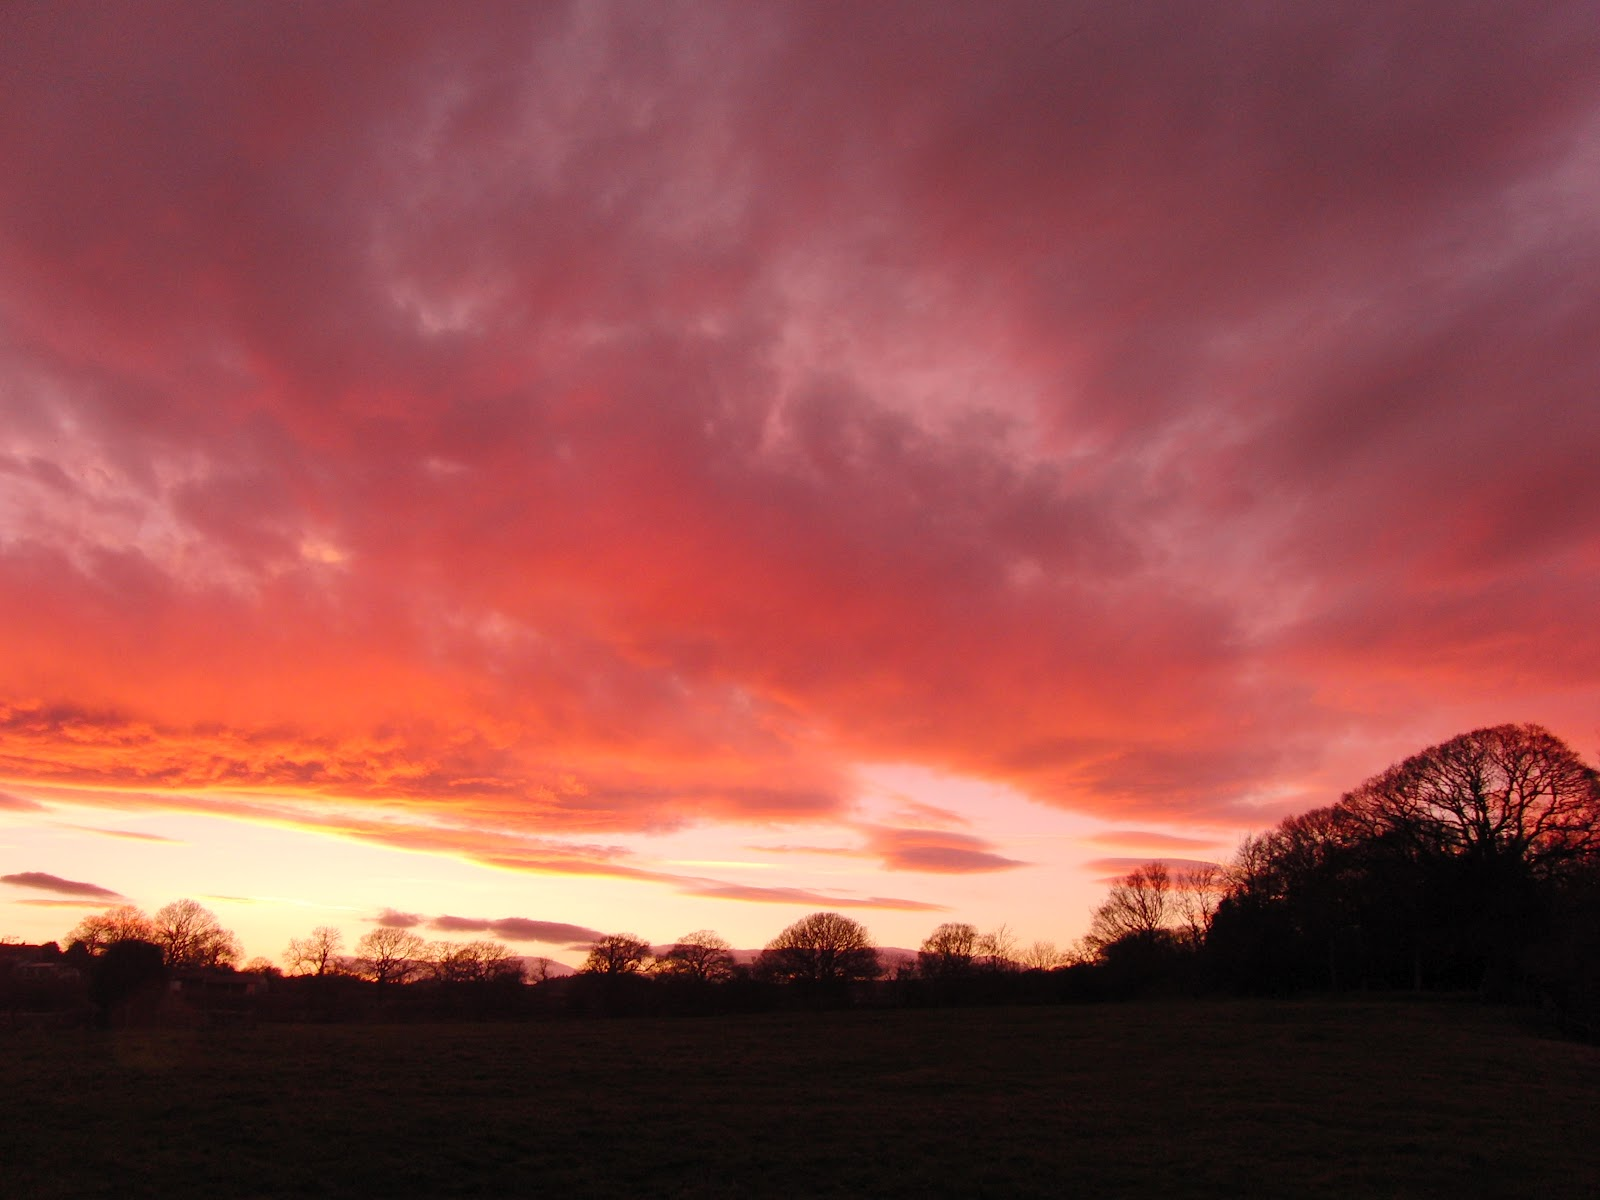 Red sky at night sheperds delight,